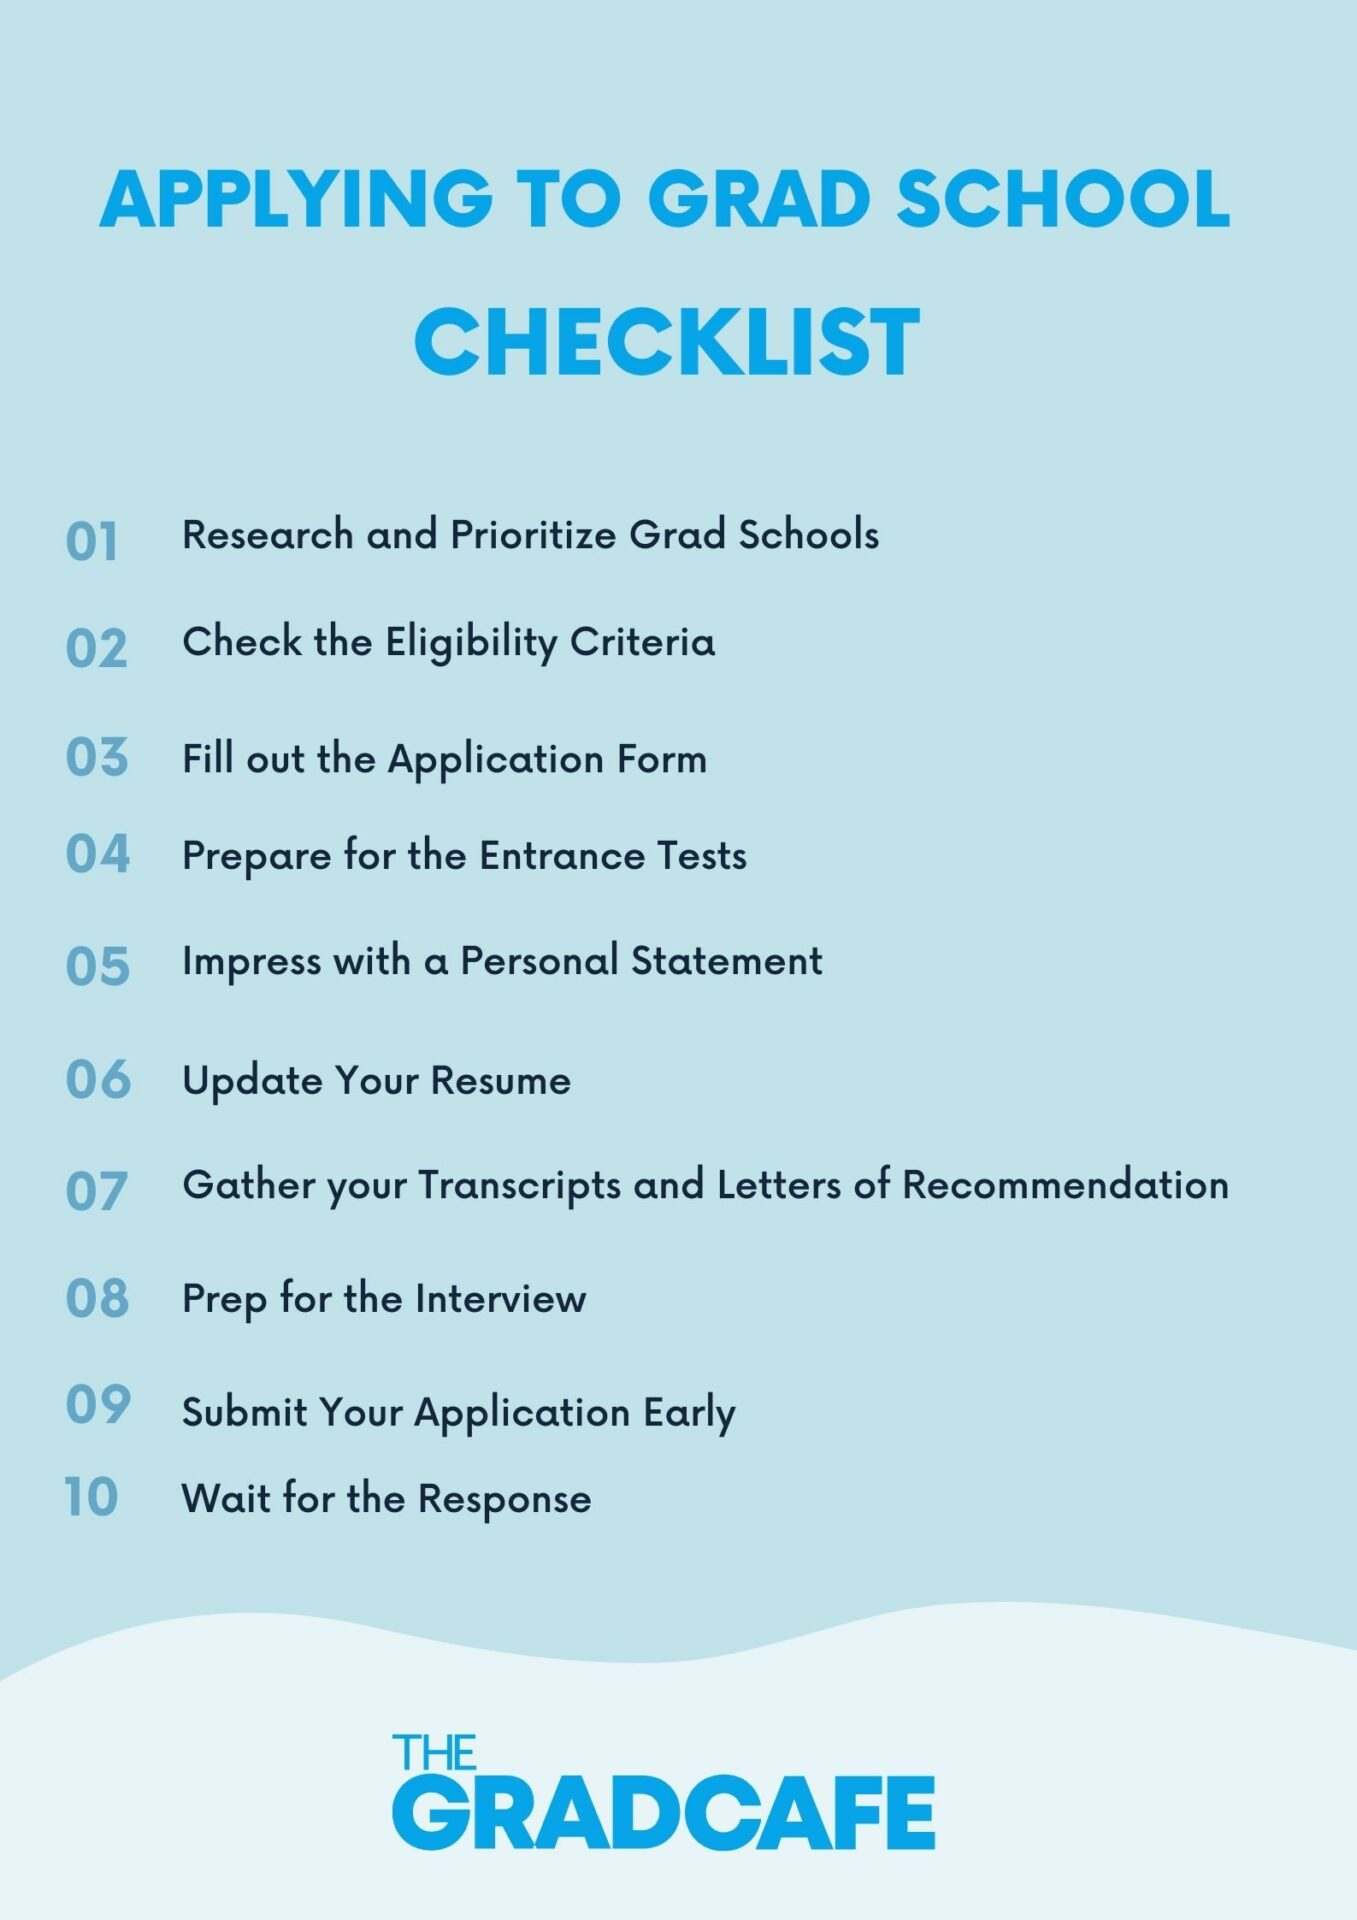 how to apply to grad school